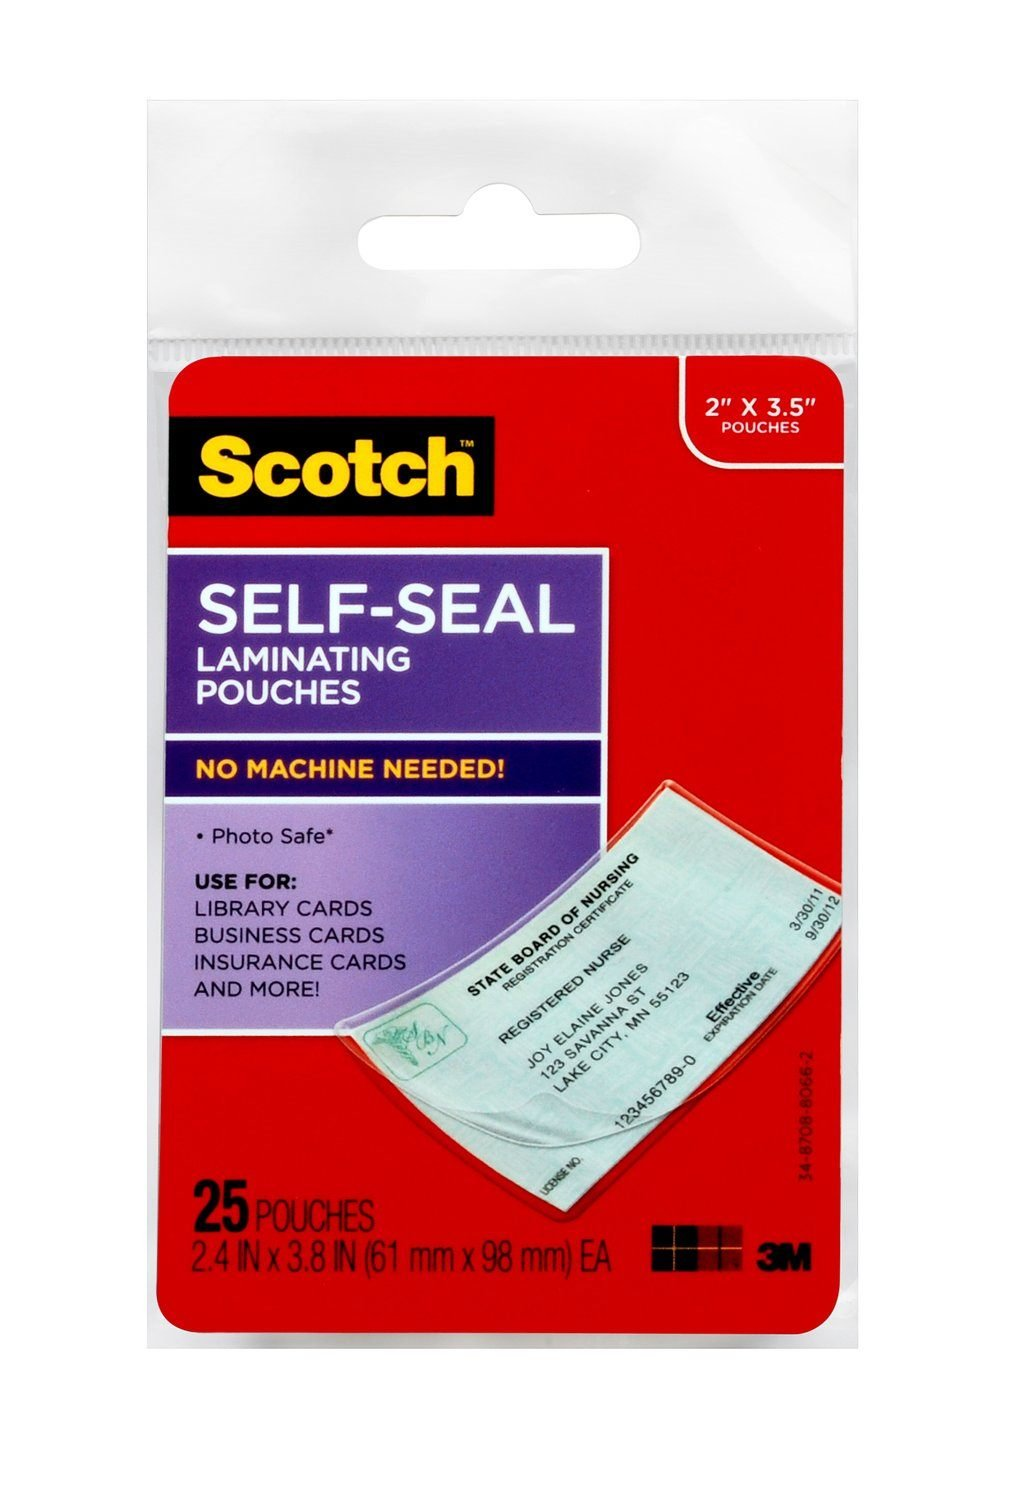 Scotch LS851G Self-Sealing Laminating Pouches, 9.5 mil, 2 7/16 x 3 7/8, Business Card Size (Pack of 25) by Scotch